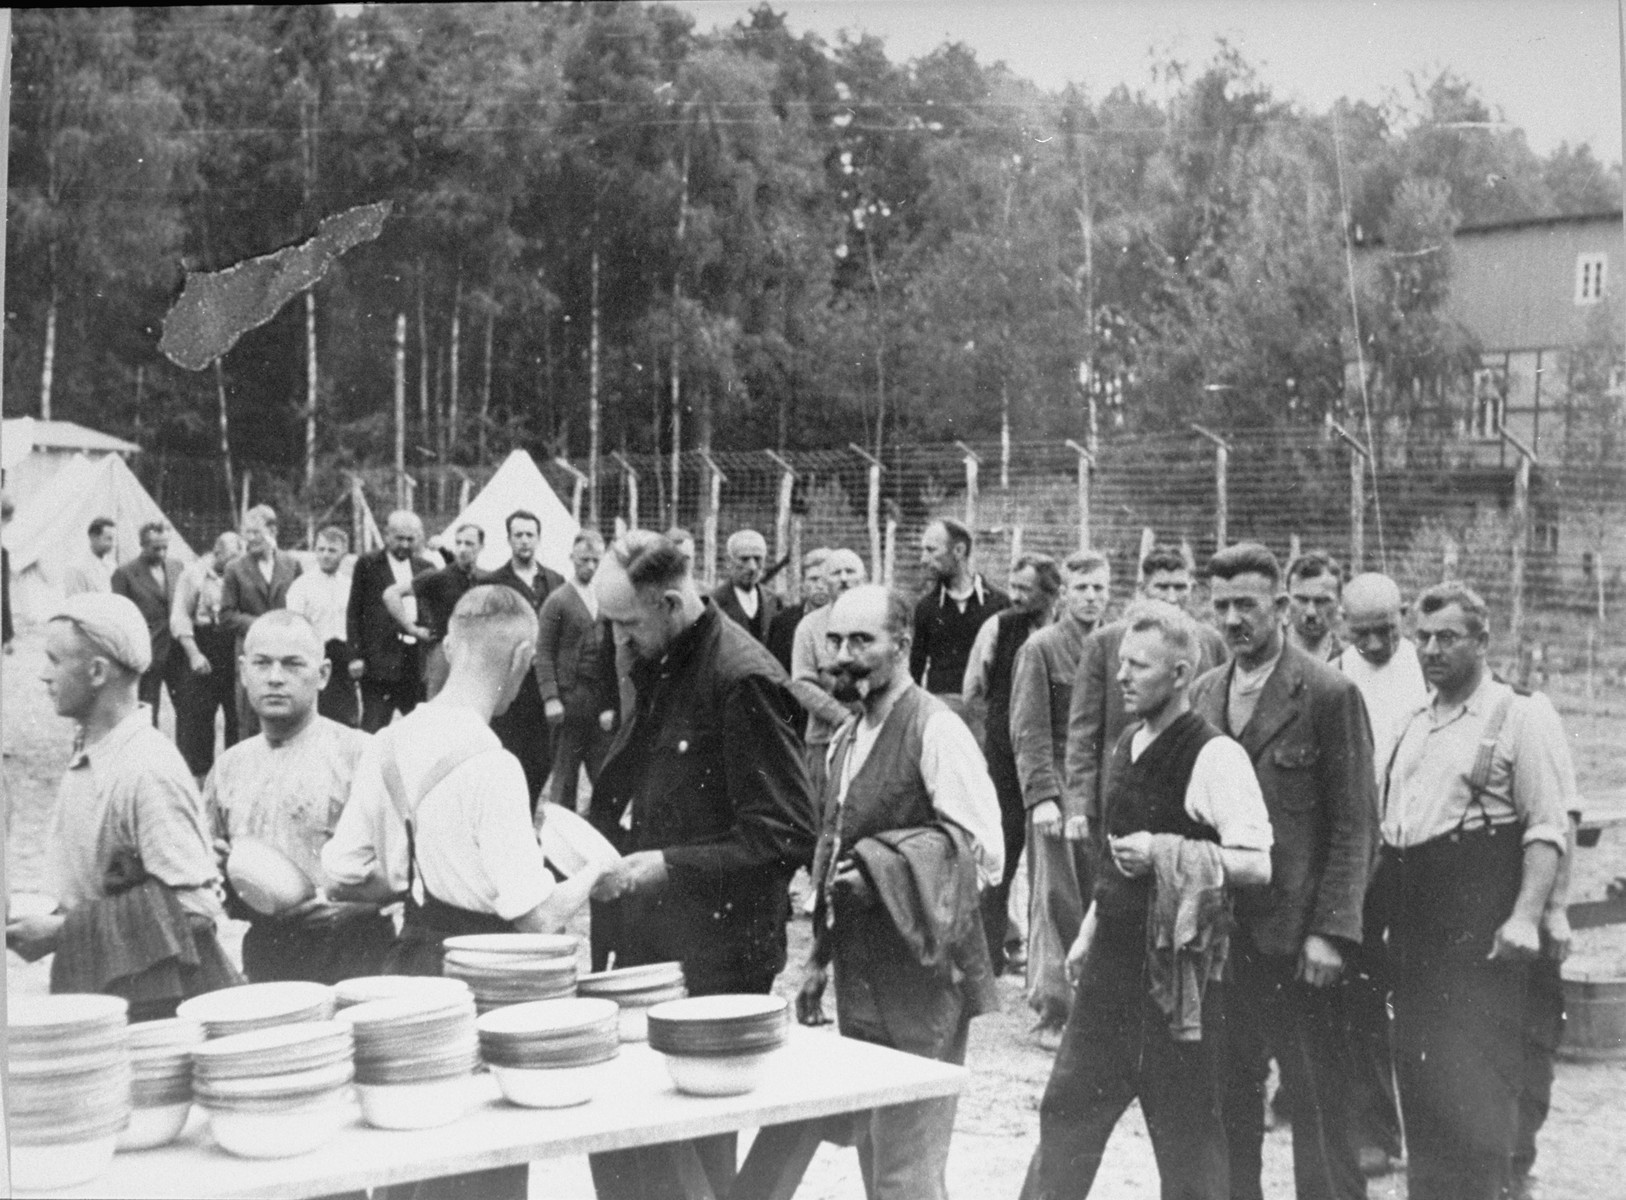 Prisoners involved in the construction of the camp queue up for food.